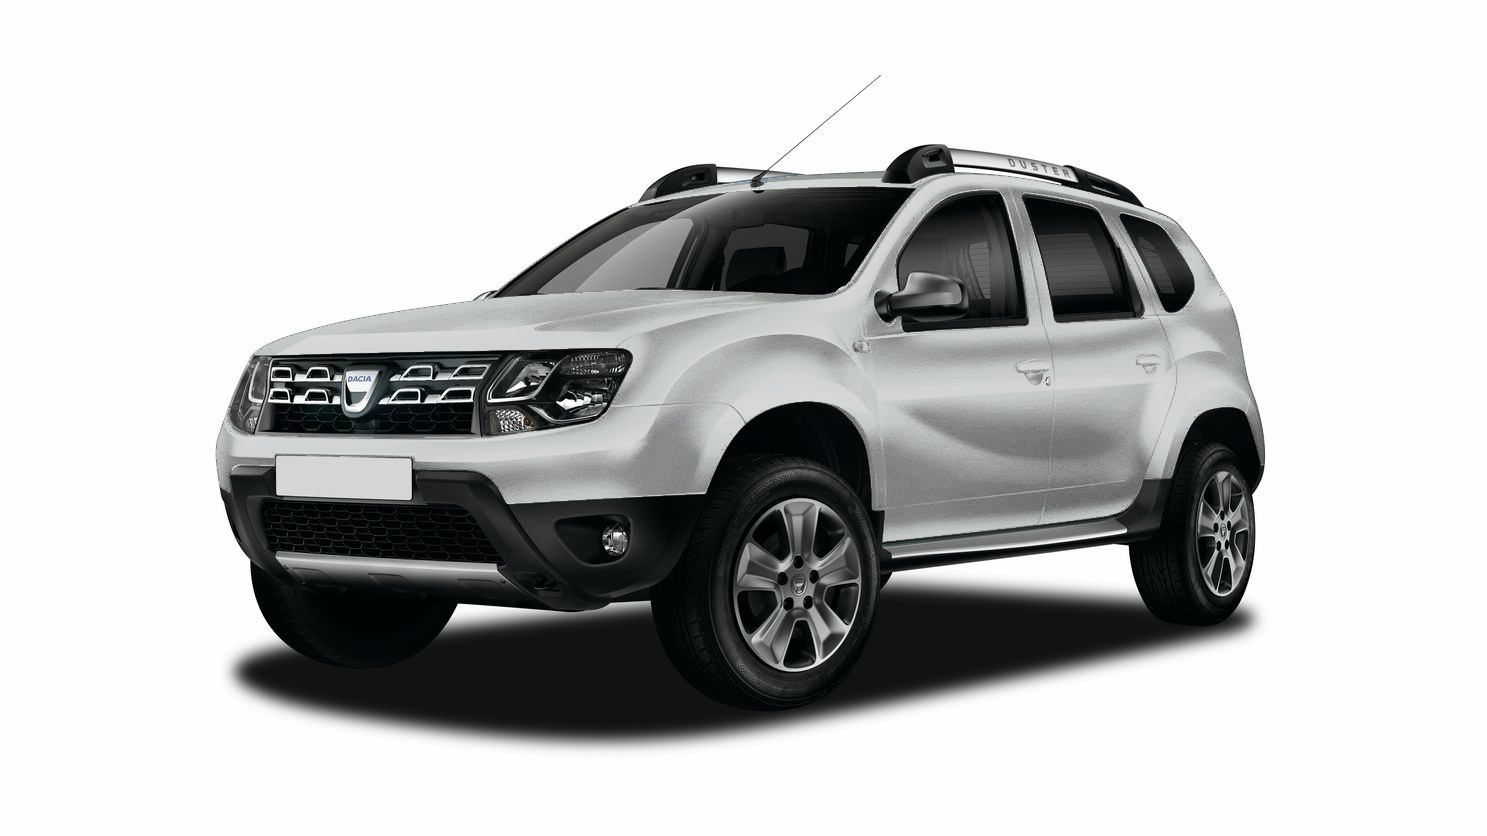 dacia duster 4x2 et suv 5 portes essence 1 2 tce. Black Bedroom Furniture Sets. Home Design Ideas